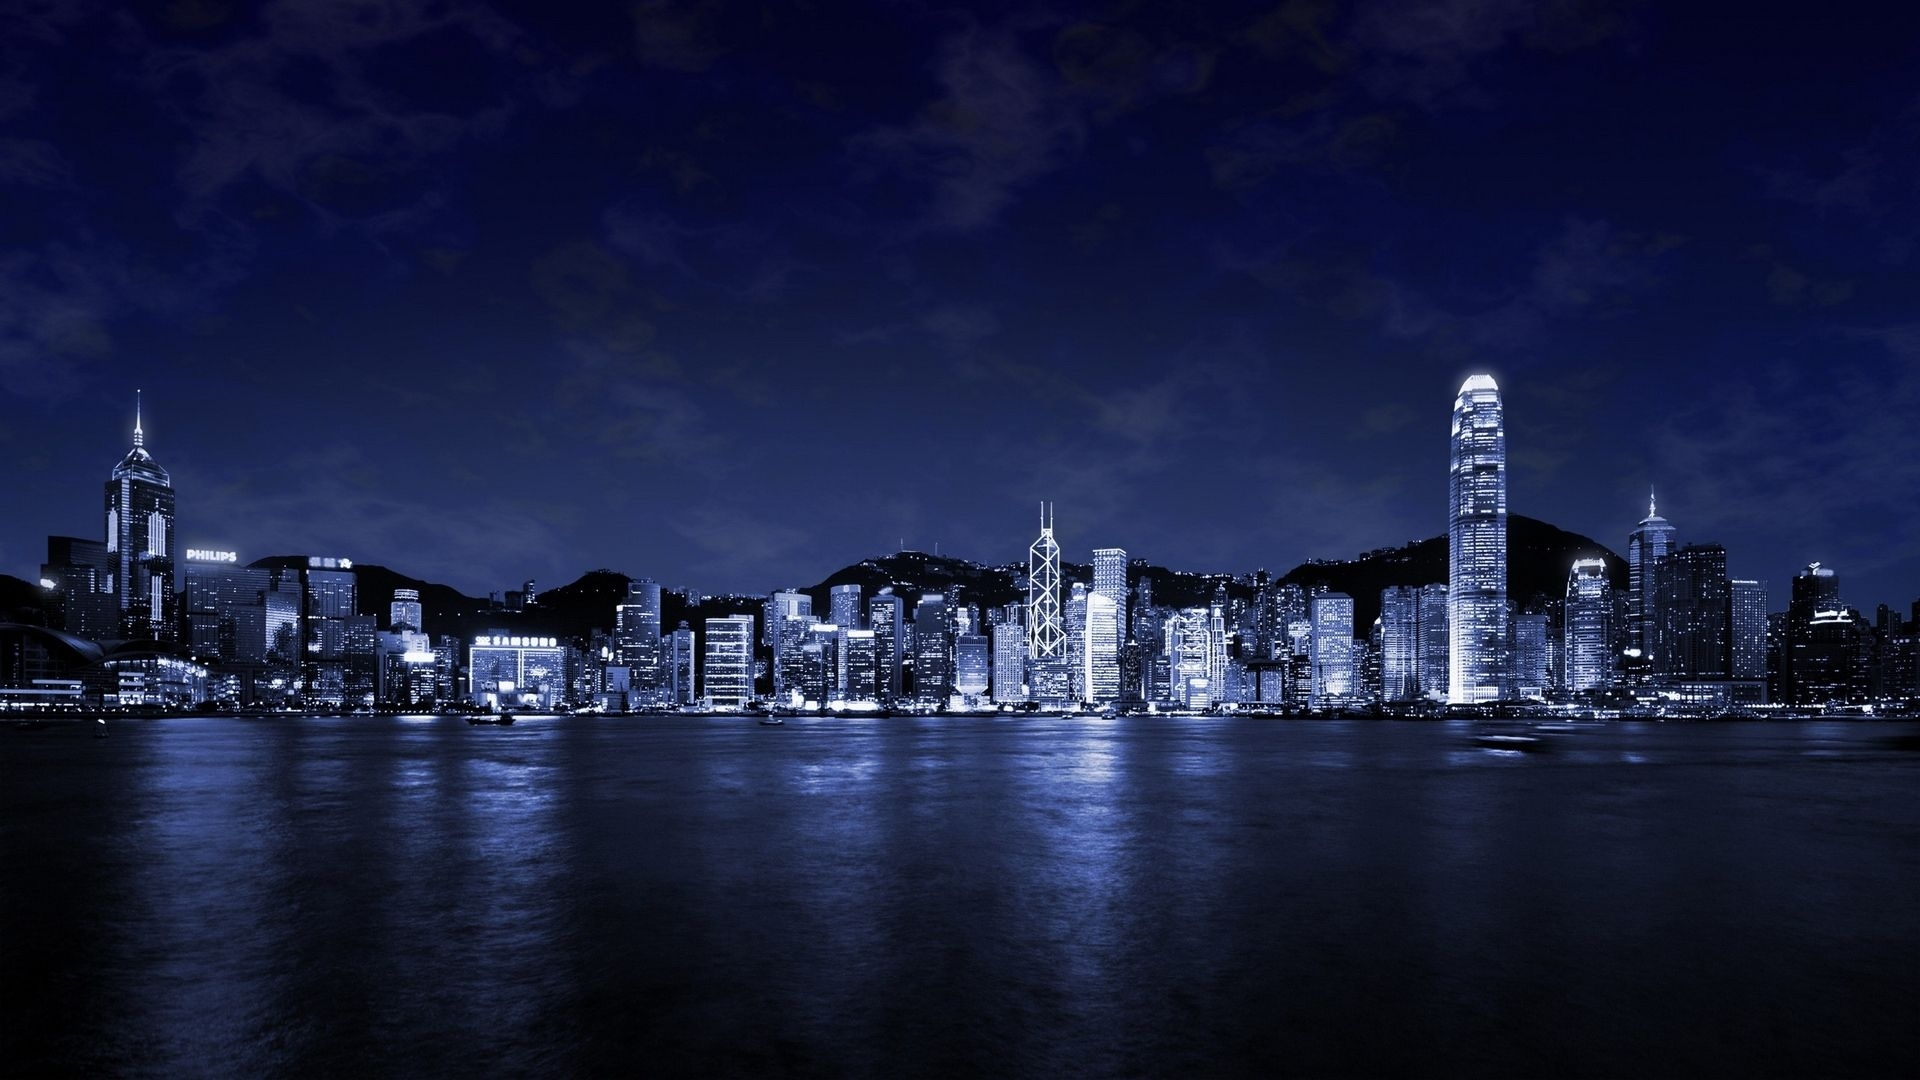 wonderful cityscape at night wallpaper free | manscapes: cityscapes